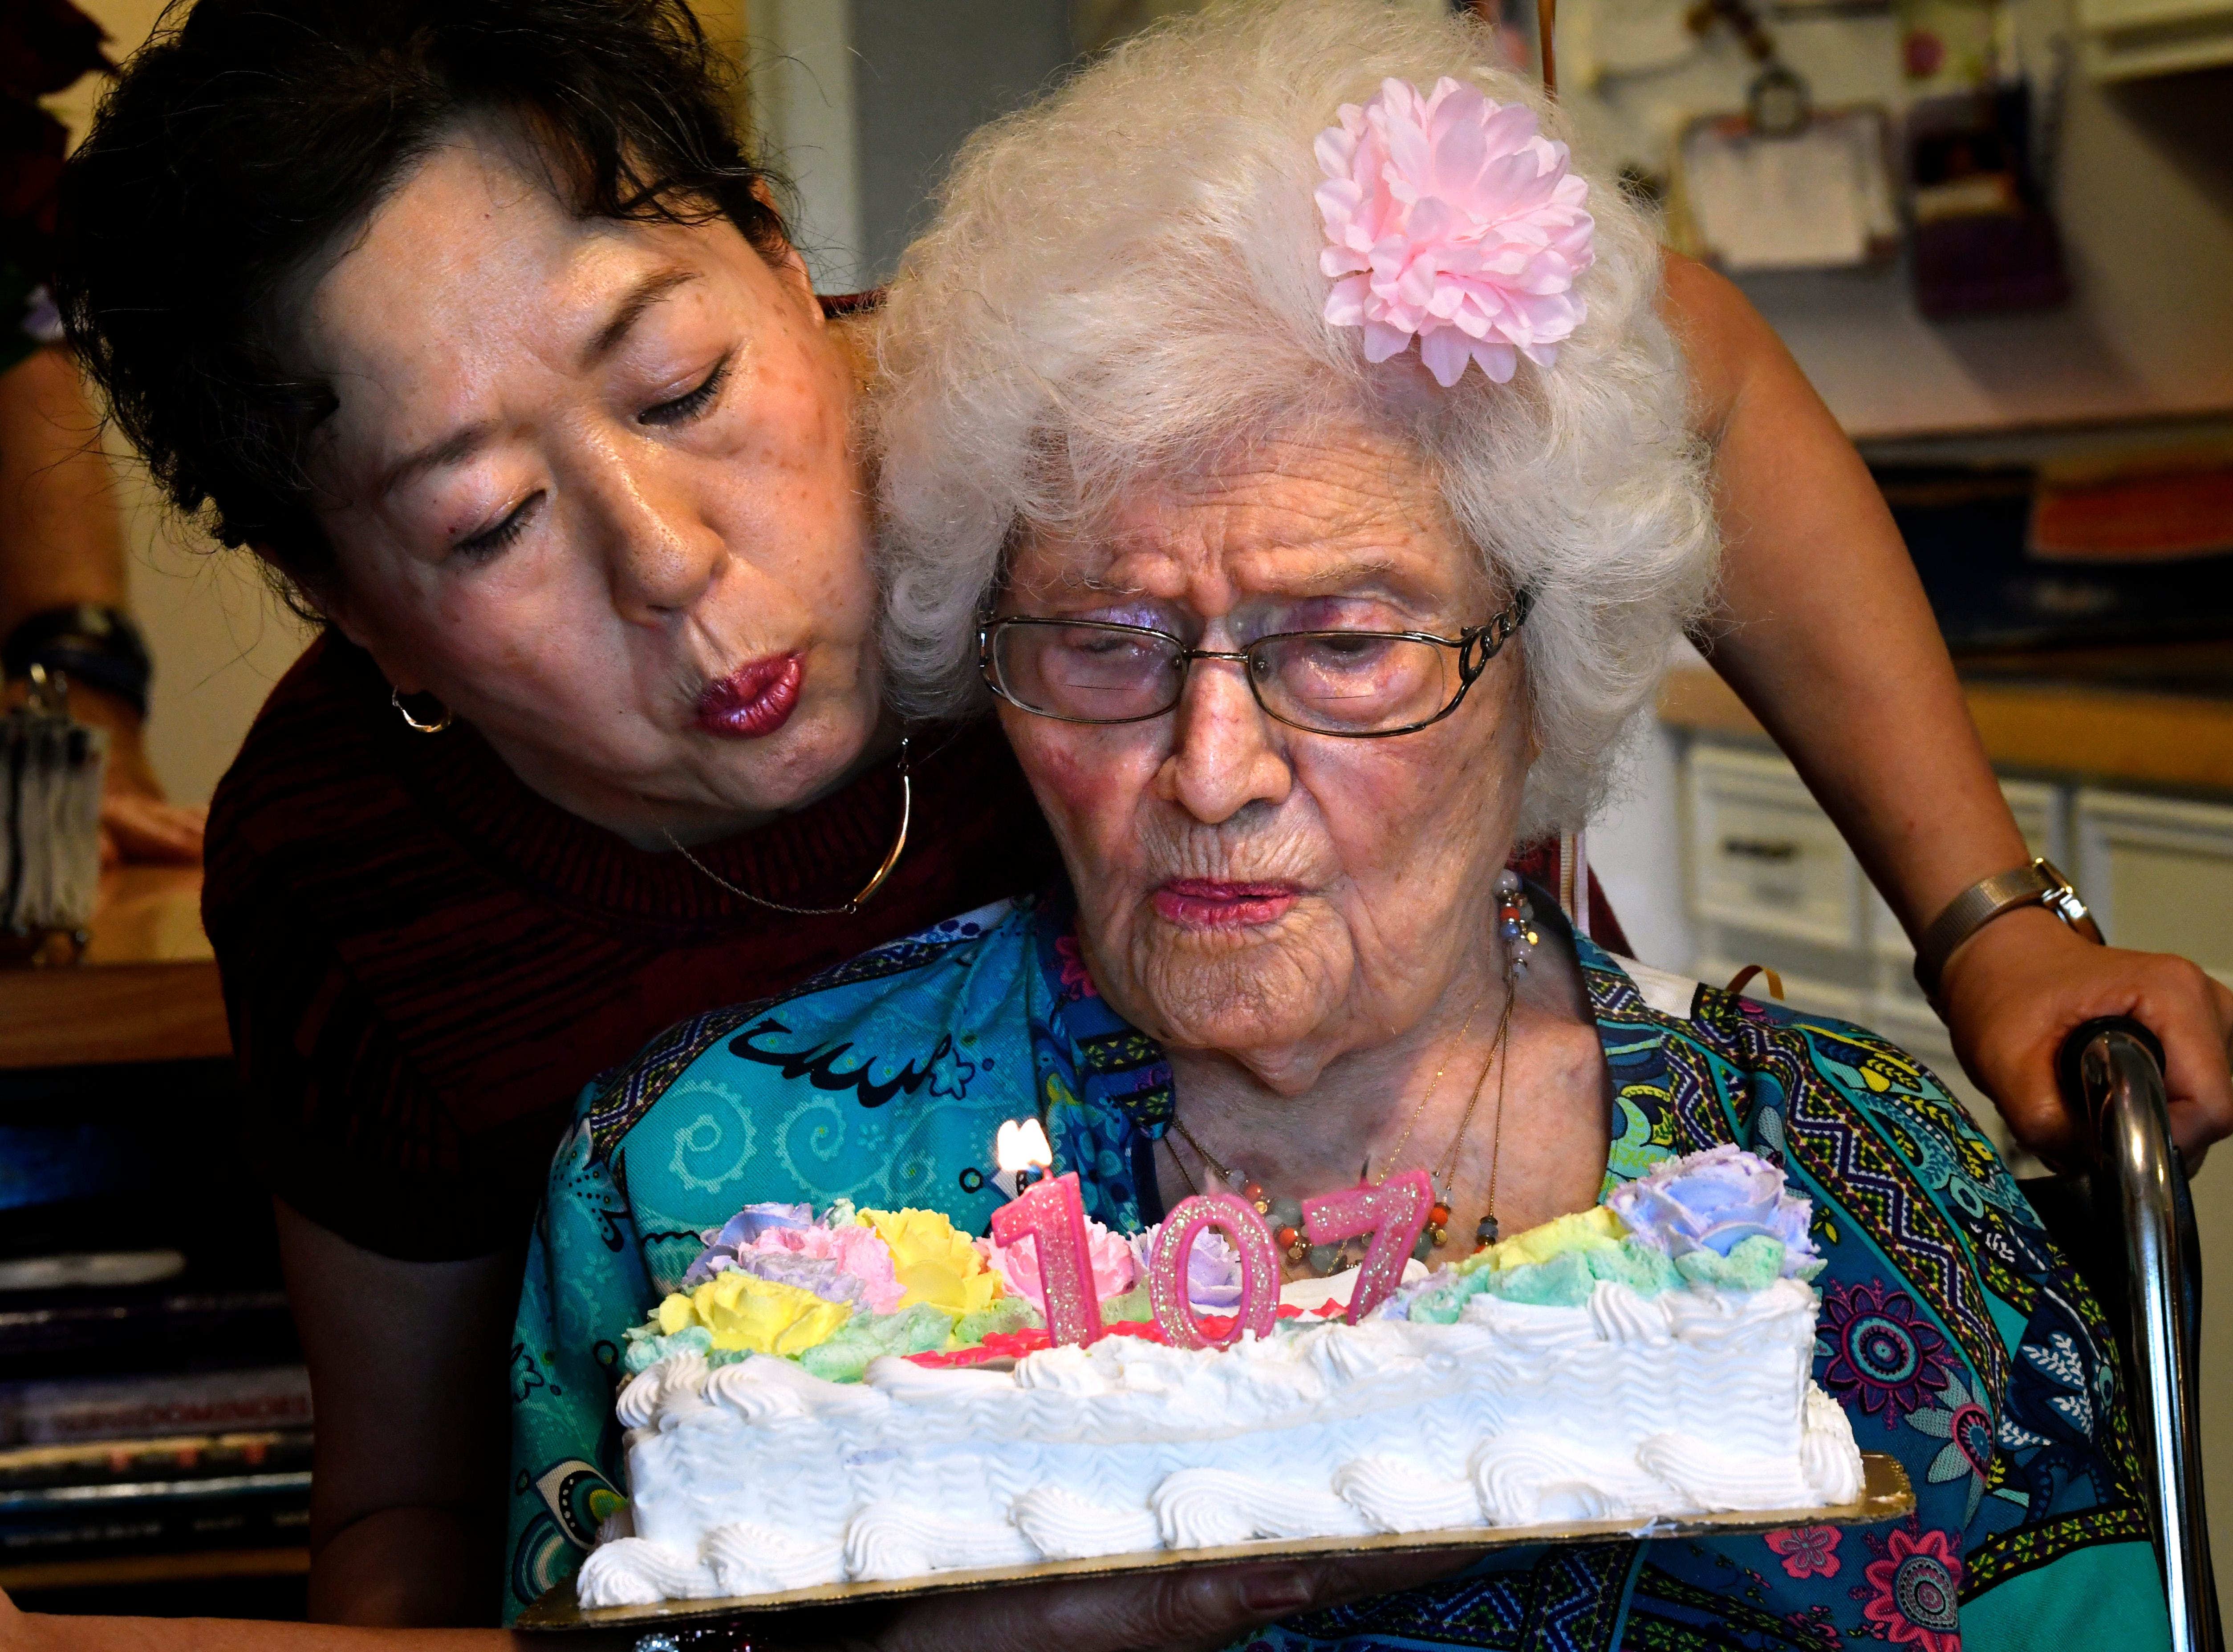 """Gladys Henson gets an assist from Sue Gibson in blowing out candles on the cake celebrating her 107th birthday Wednesday. On the cake, wording encouraged the birthday girl to """"Stay Fabulous."""""""